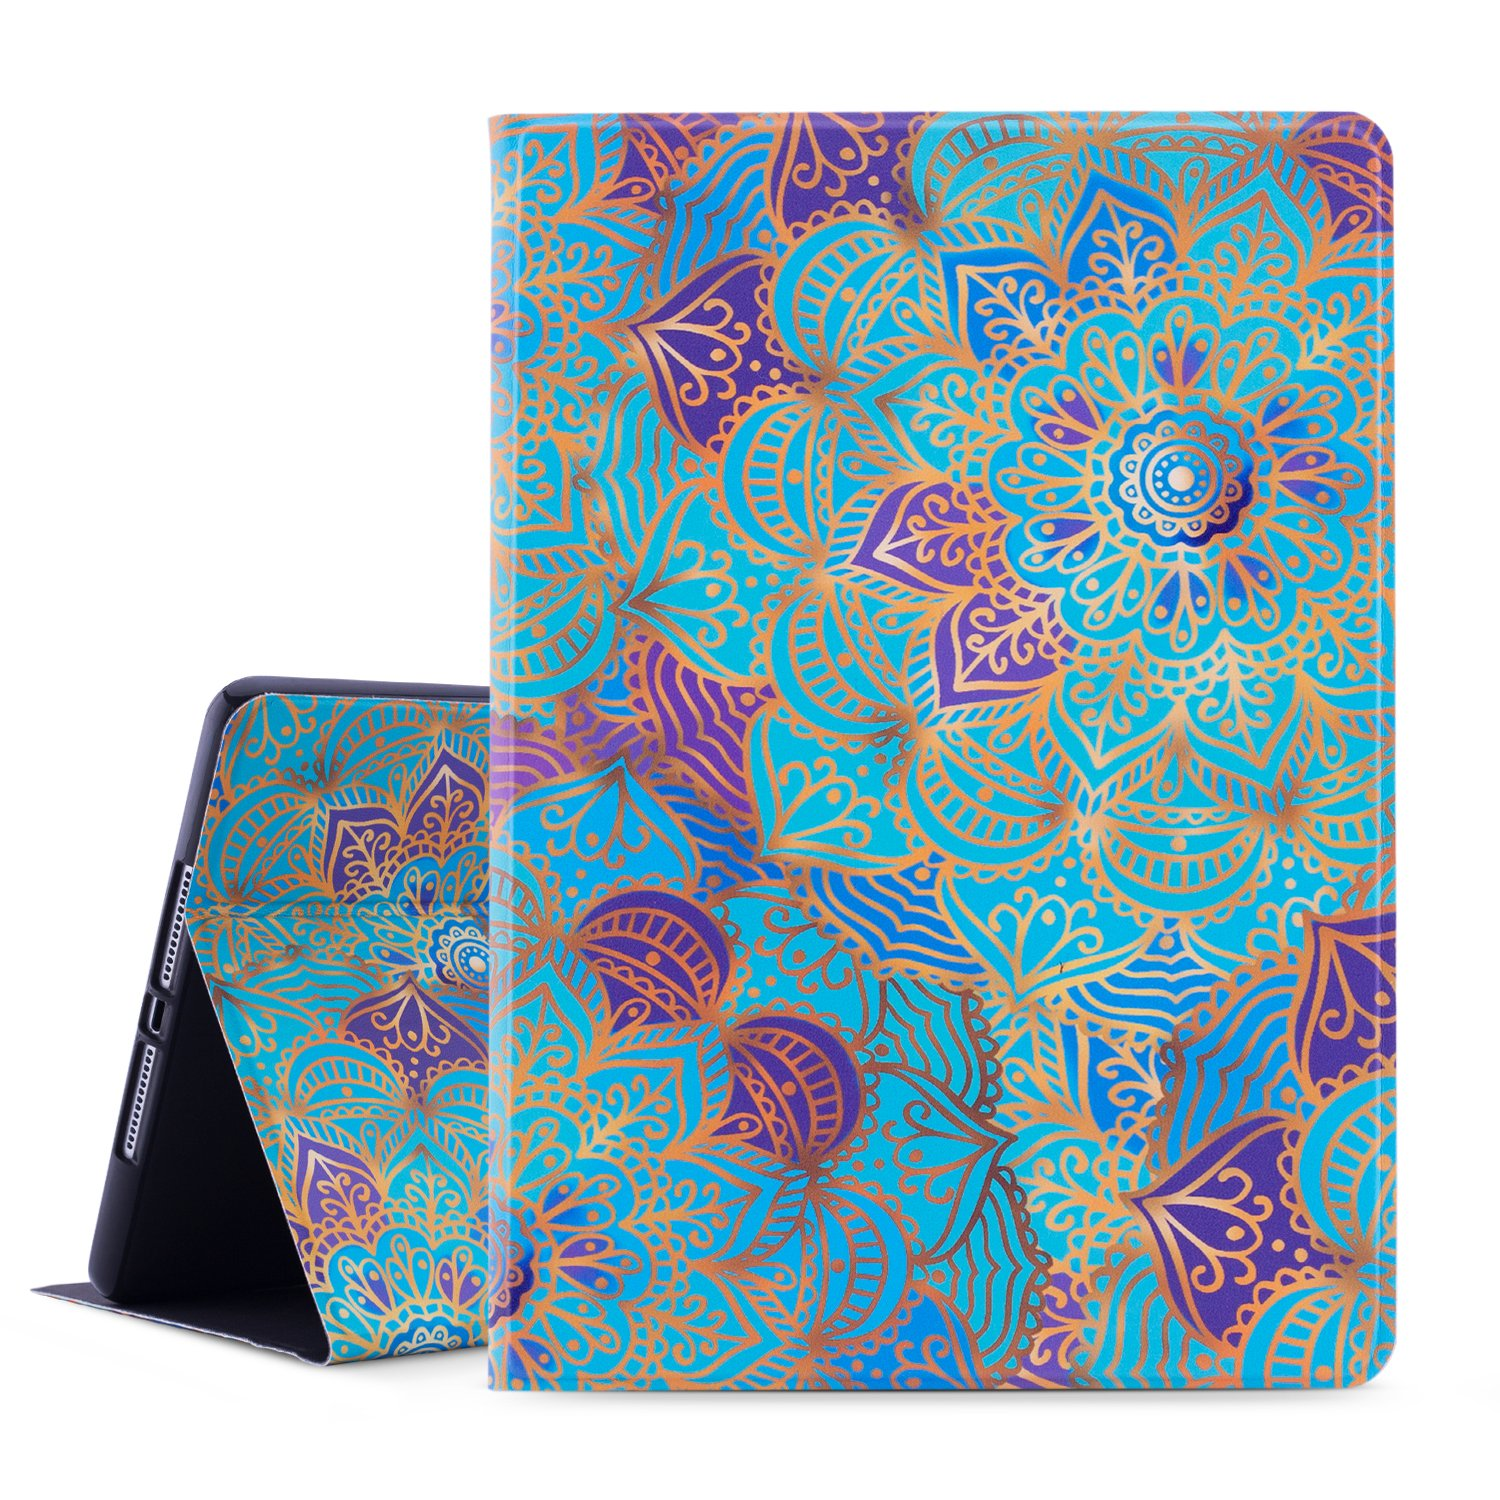 Dopup iPad 9.7 Case 2018/2017 iPad Case, Premium Leather Folio Case Cover for Apple iPad 5th 6th Generation, Multiple Viewing Angles Stand, Also Fits iPad Air 2/ iPad Air (Mysterious Mandara)